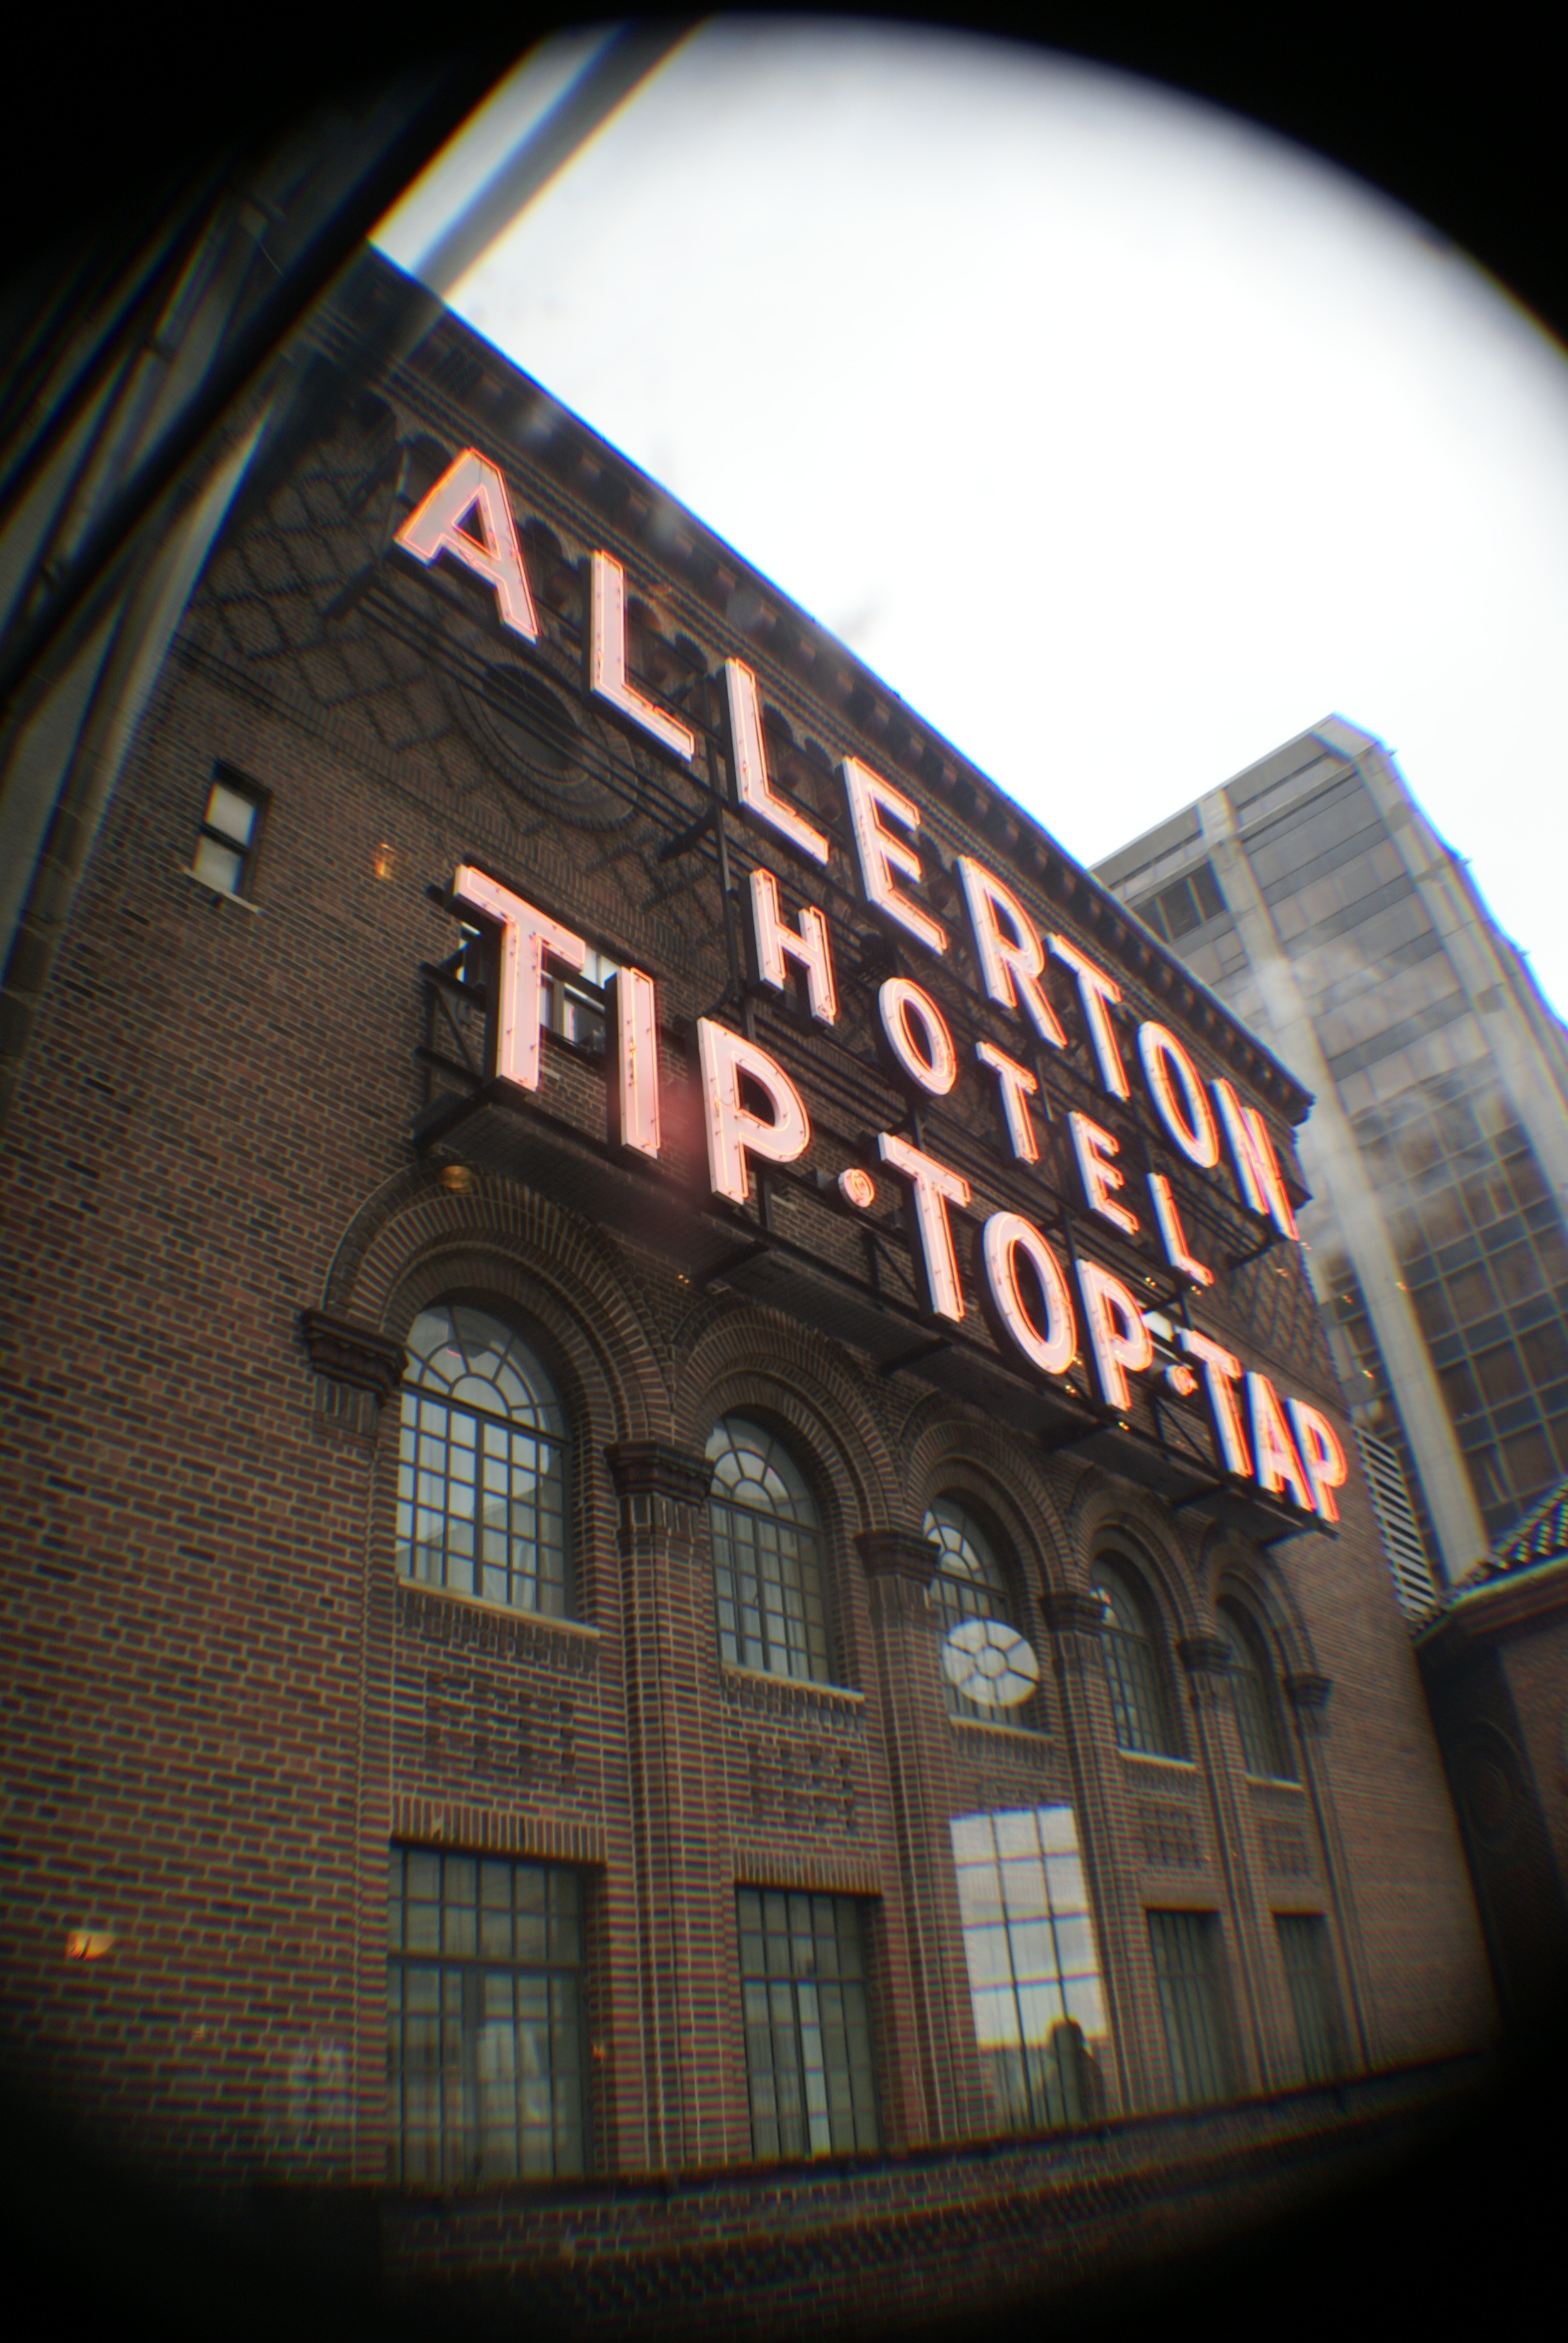 Top Top Tap Neon Sign @ The Allerton Hotel, HC